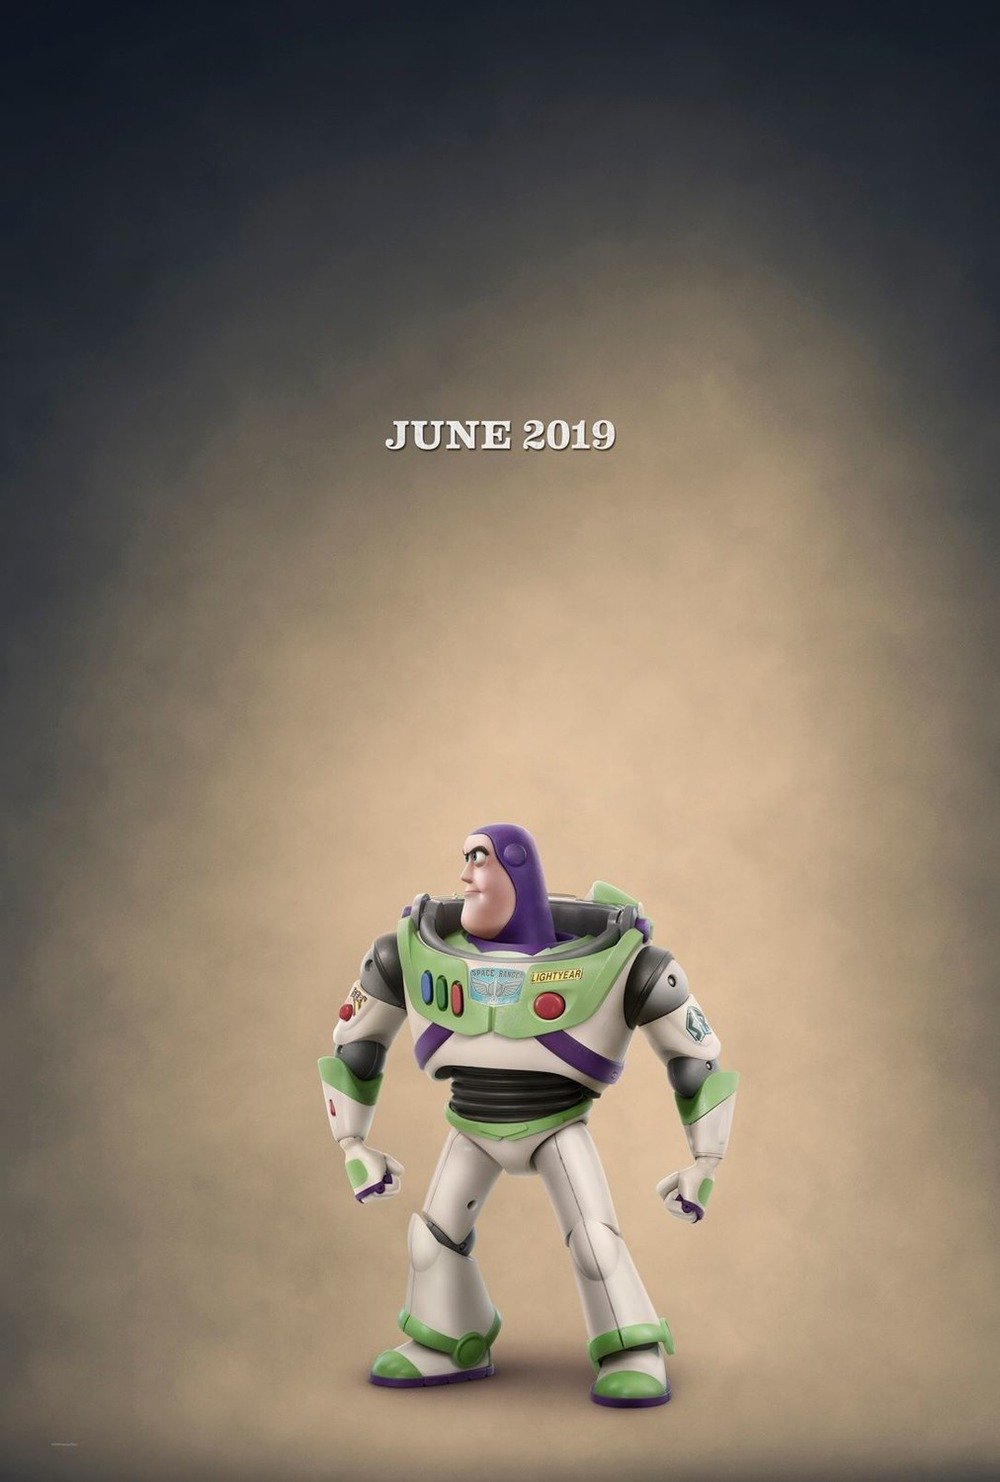 toy story 4 dvd release date